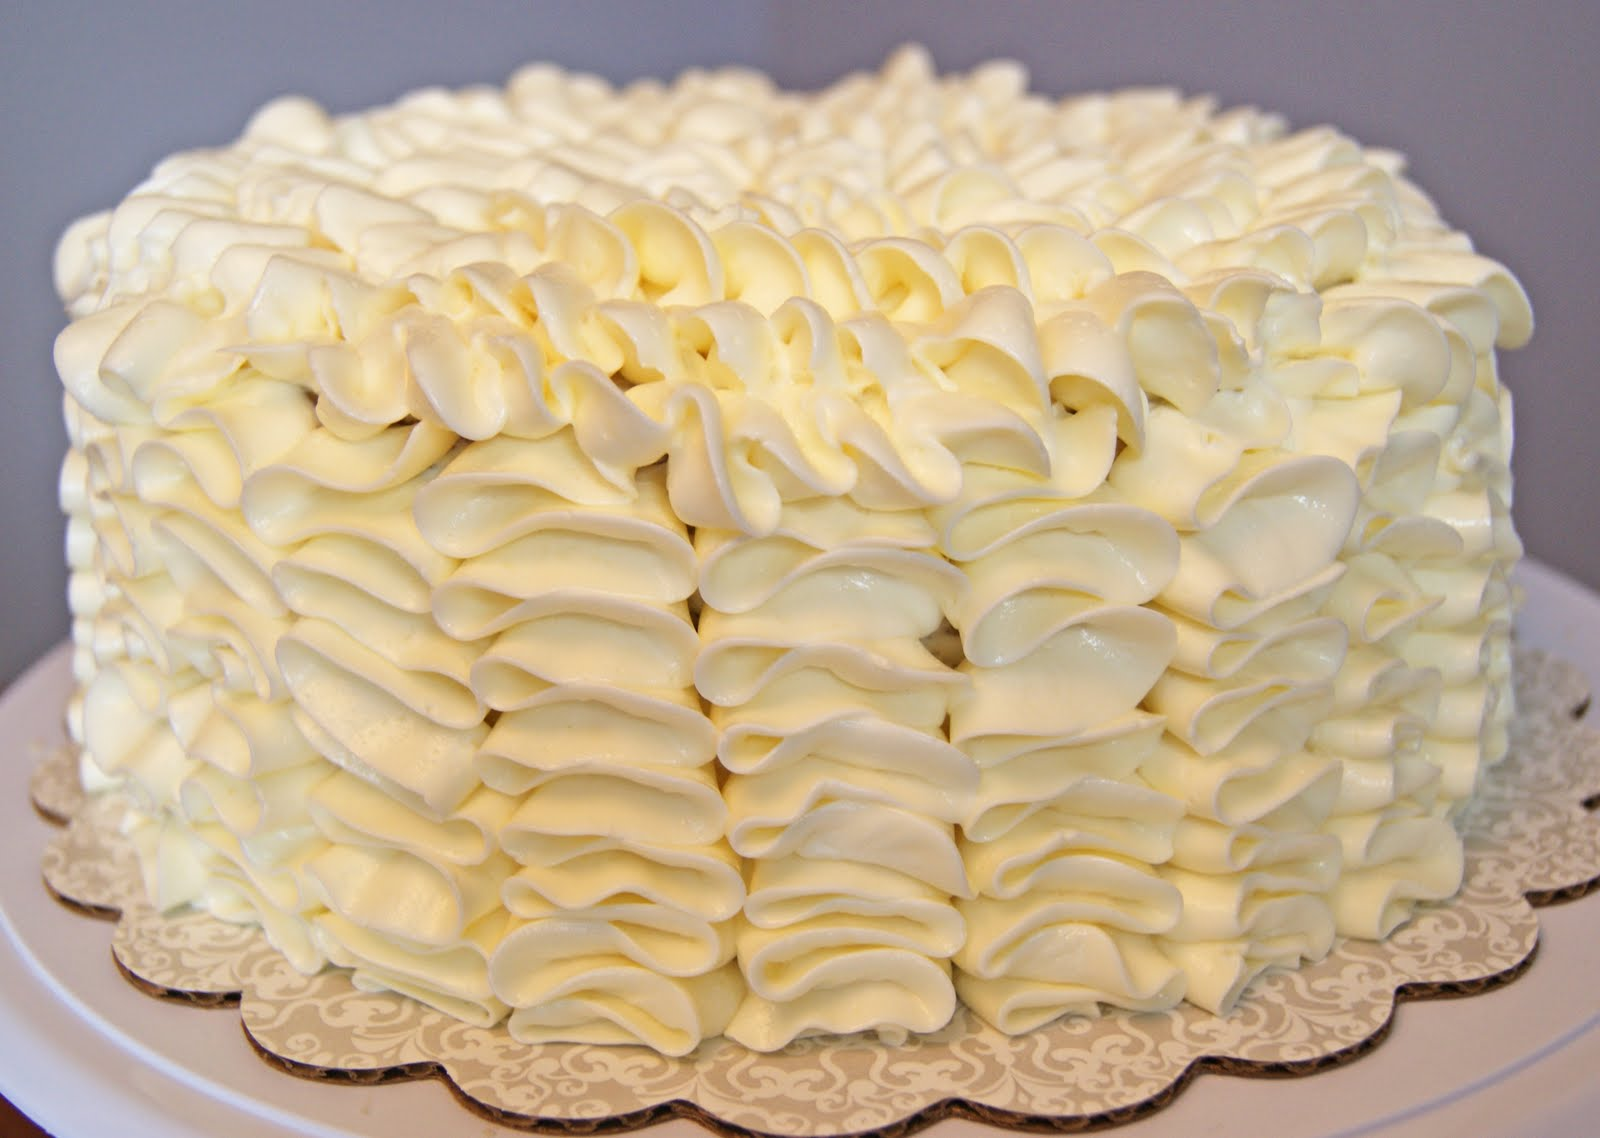 ... ! by Bec: Banana Cake with White Chocolate Swiss Meringue Buttercream